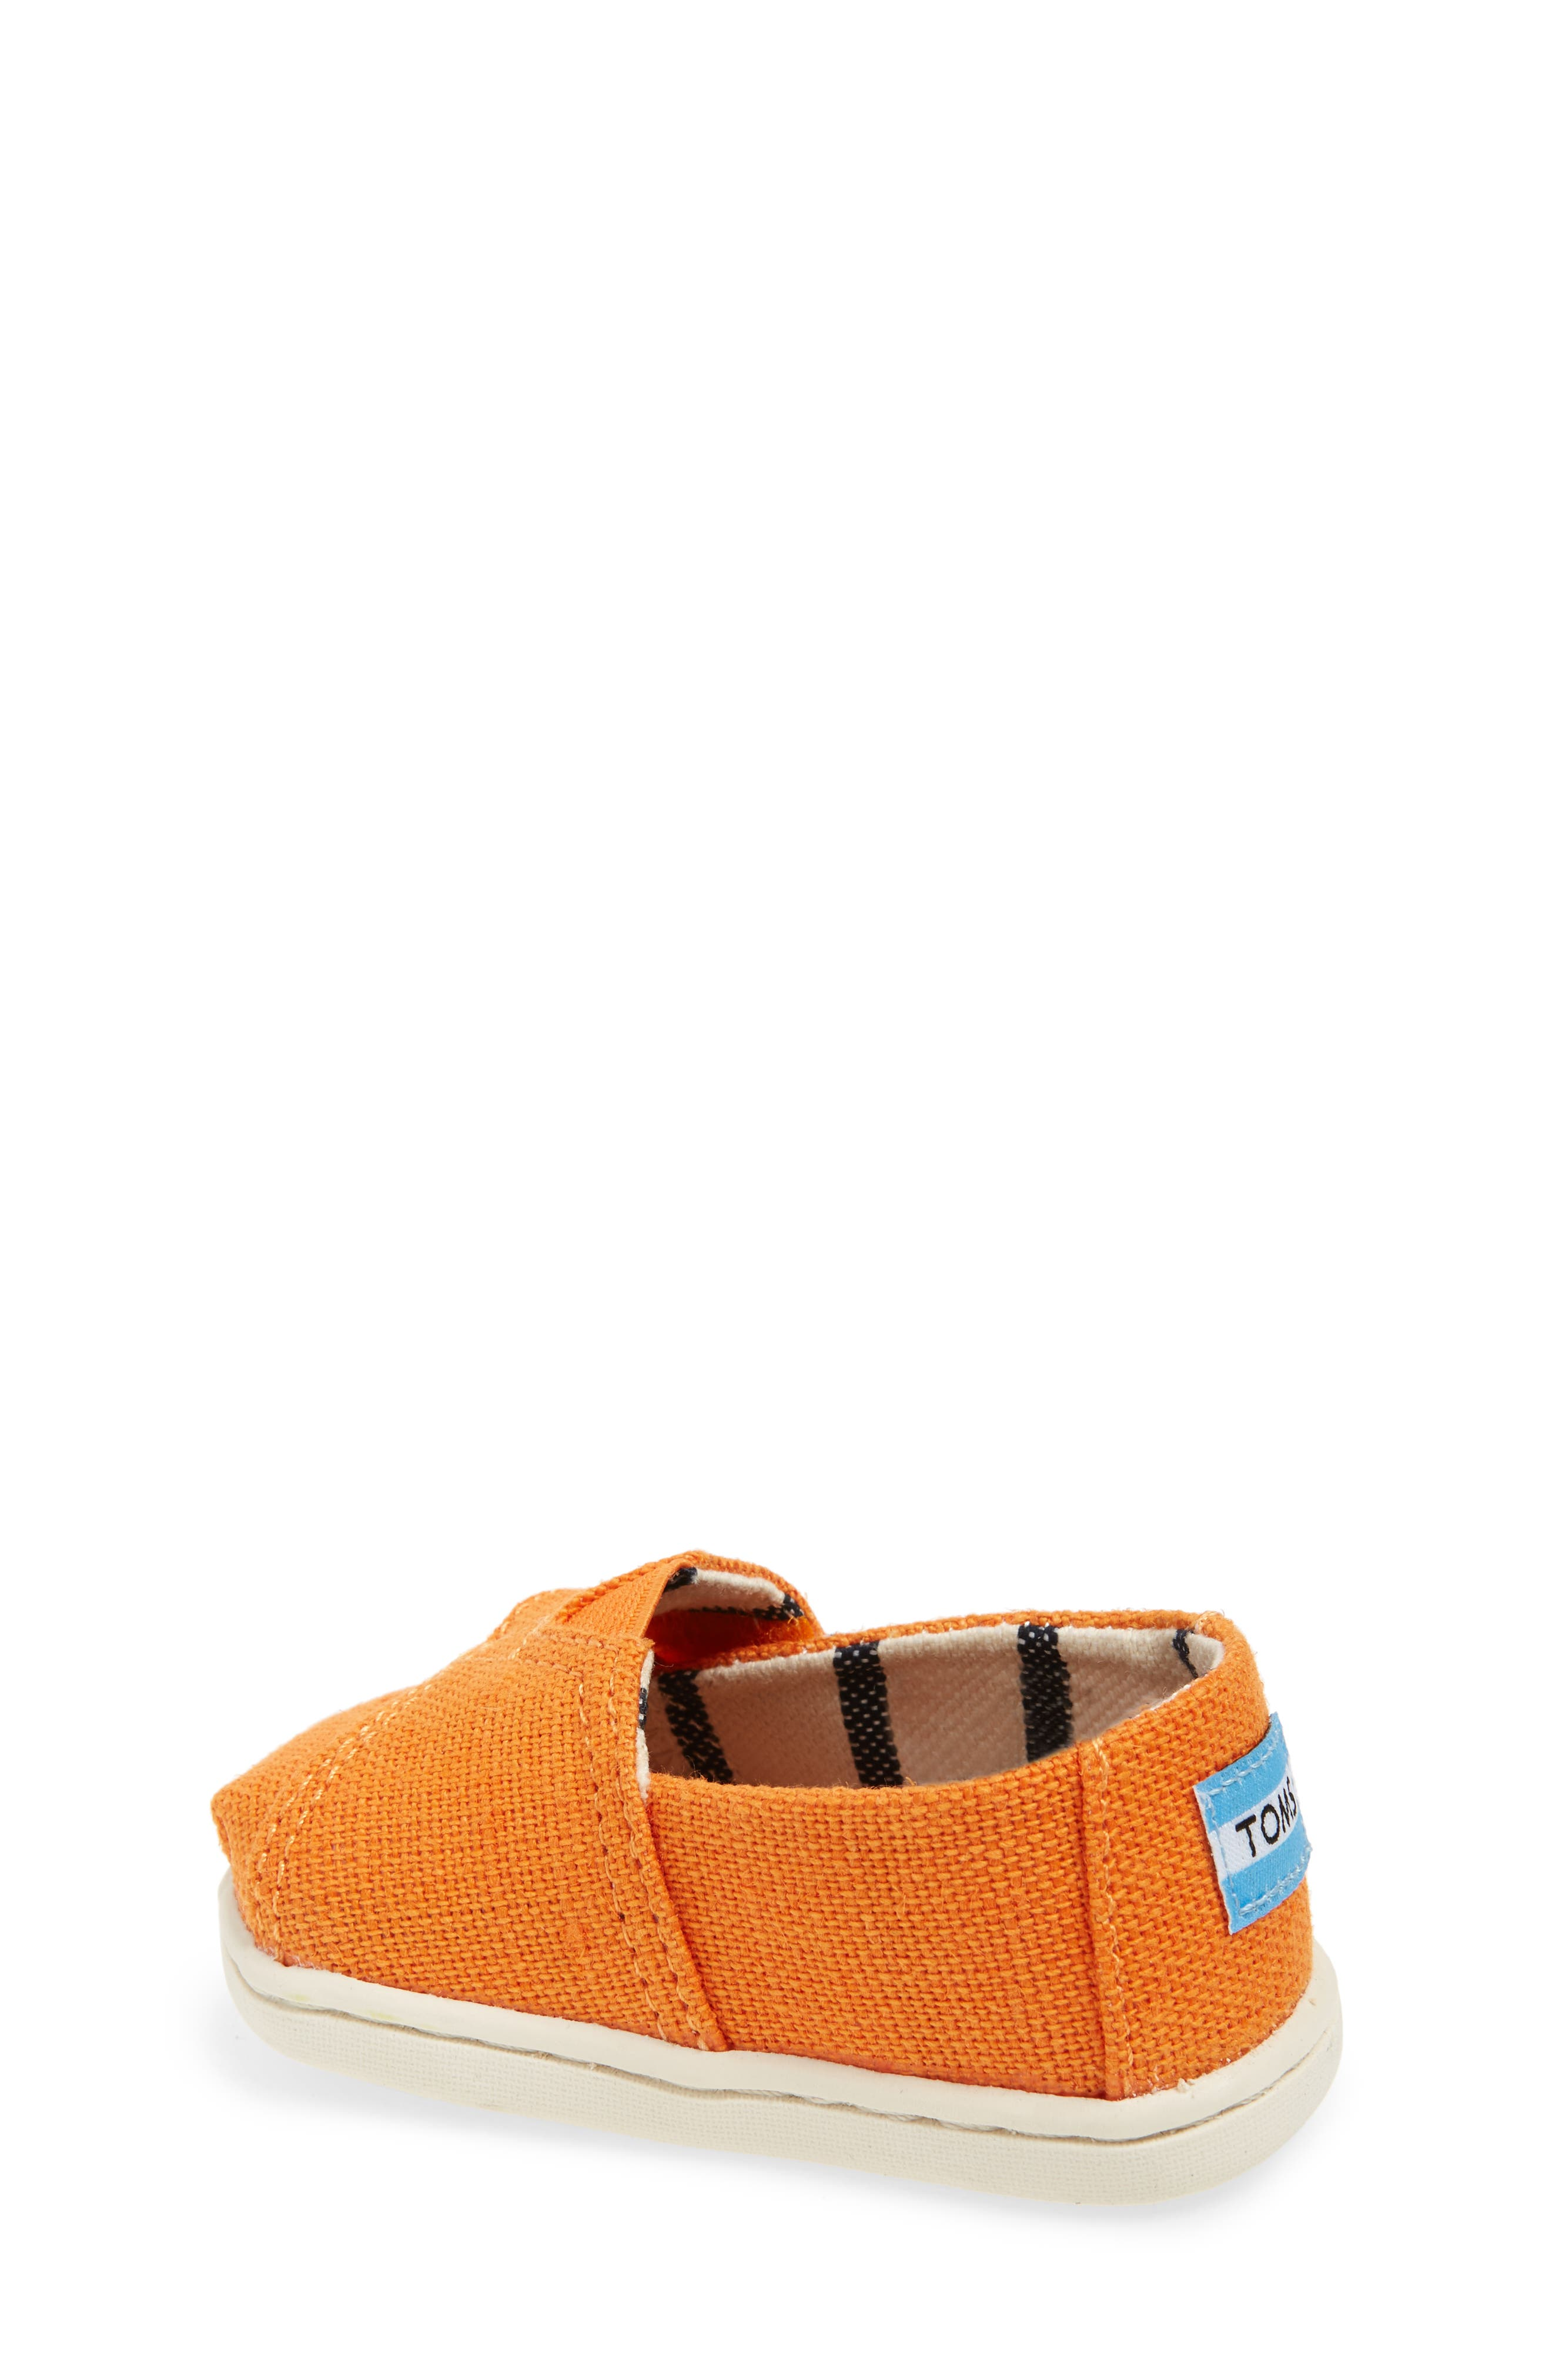 Chambray Slip-On,                             Alternate thumbnail 2, color,                             Russet Orange Heritage Canvas